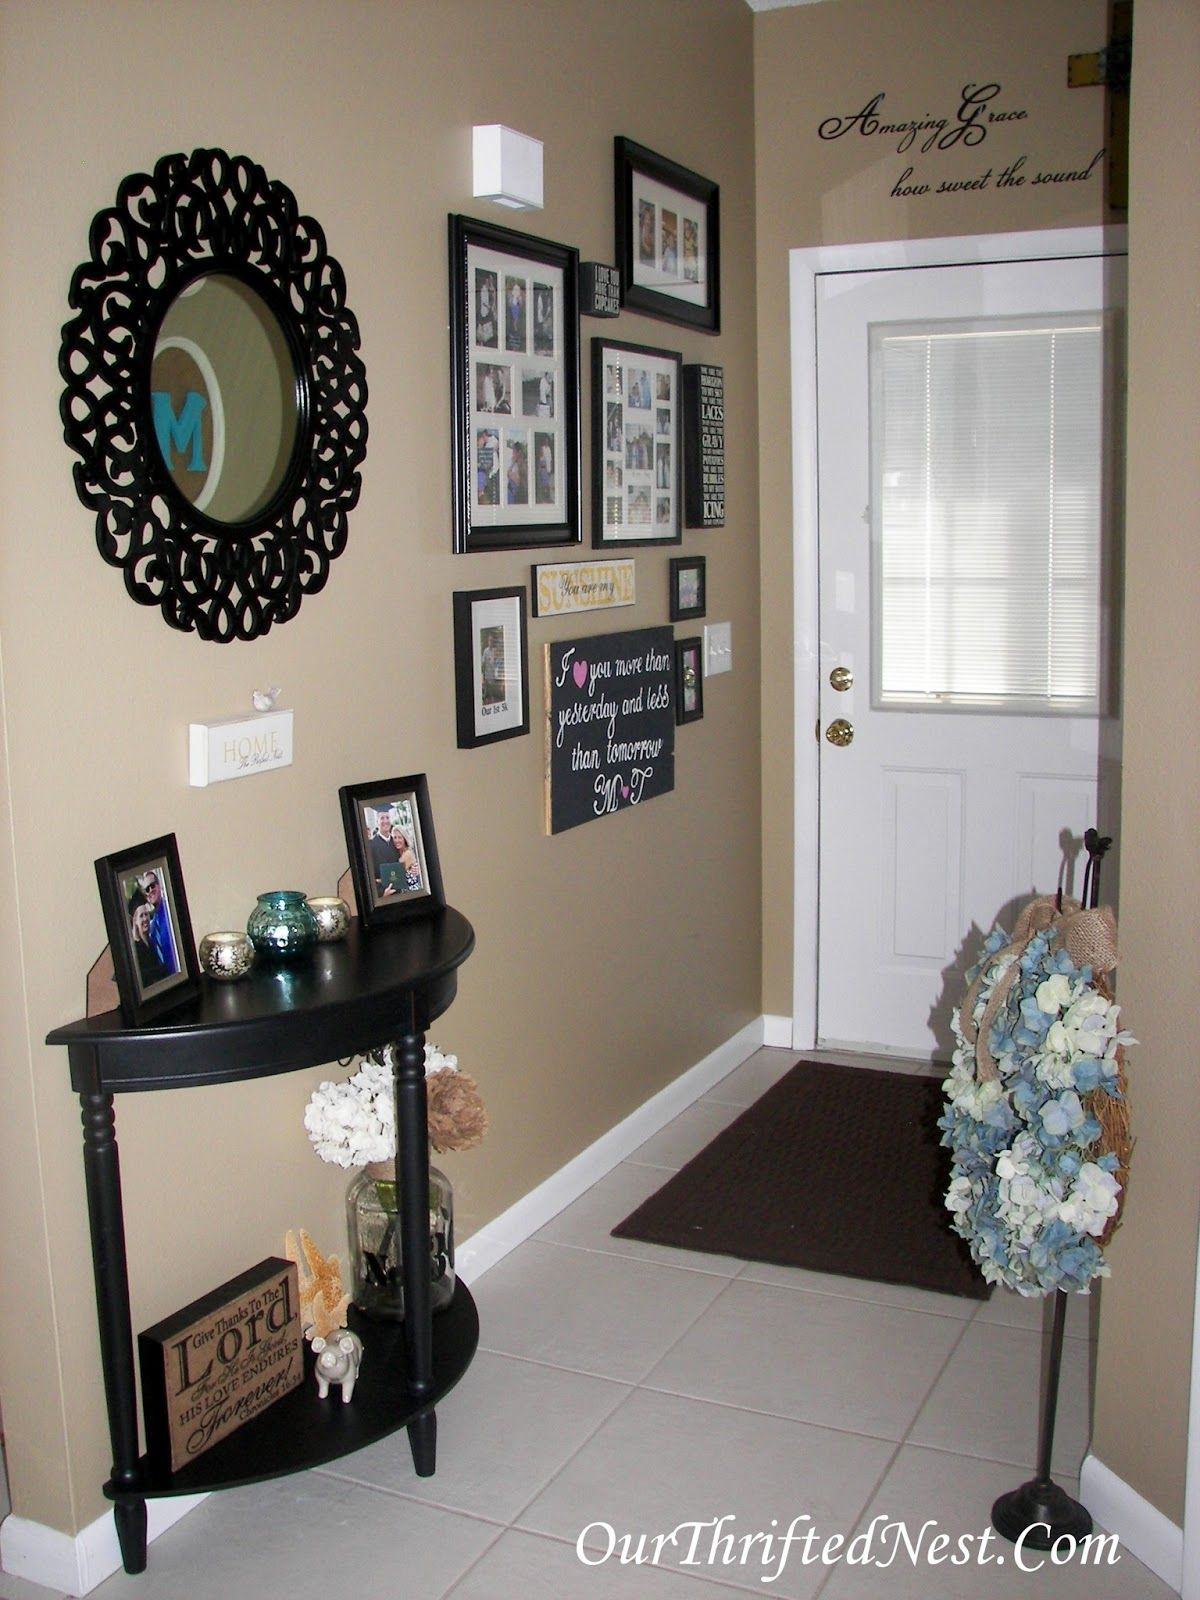 Top Entryway Decoration Ideas Methodcandles Firstimpressions - Entryway decorating ideas for small spaces